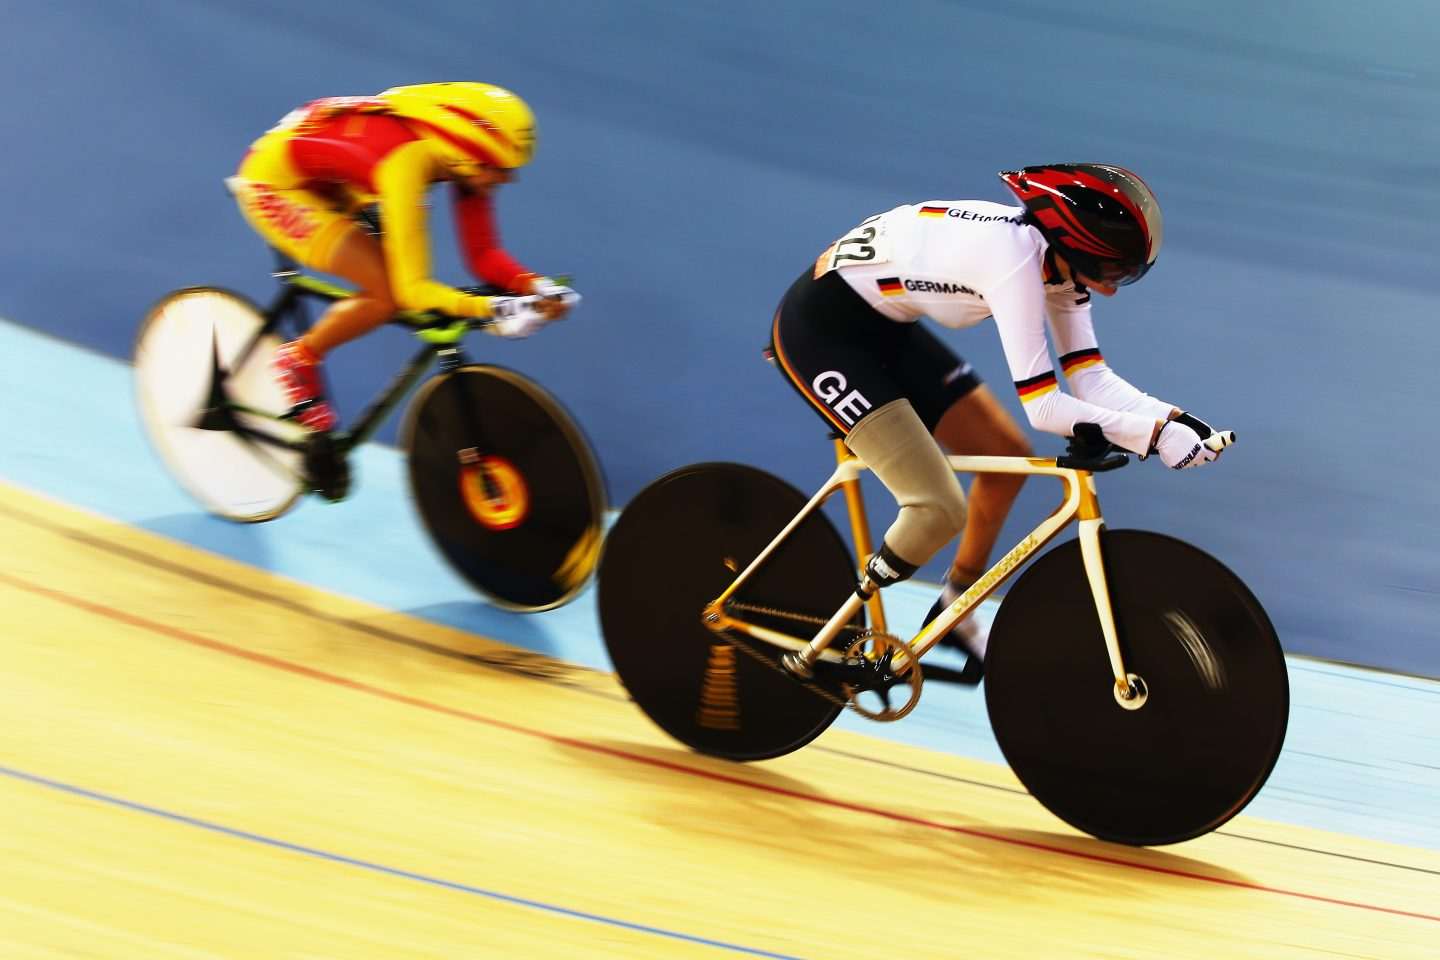 Denise Schindler competing at 2012 Paralympic Games in London, England, para-cyclist, paralympian, paralympics,motivation, inspiration, GamePlan A